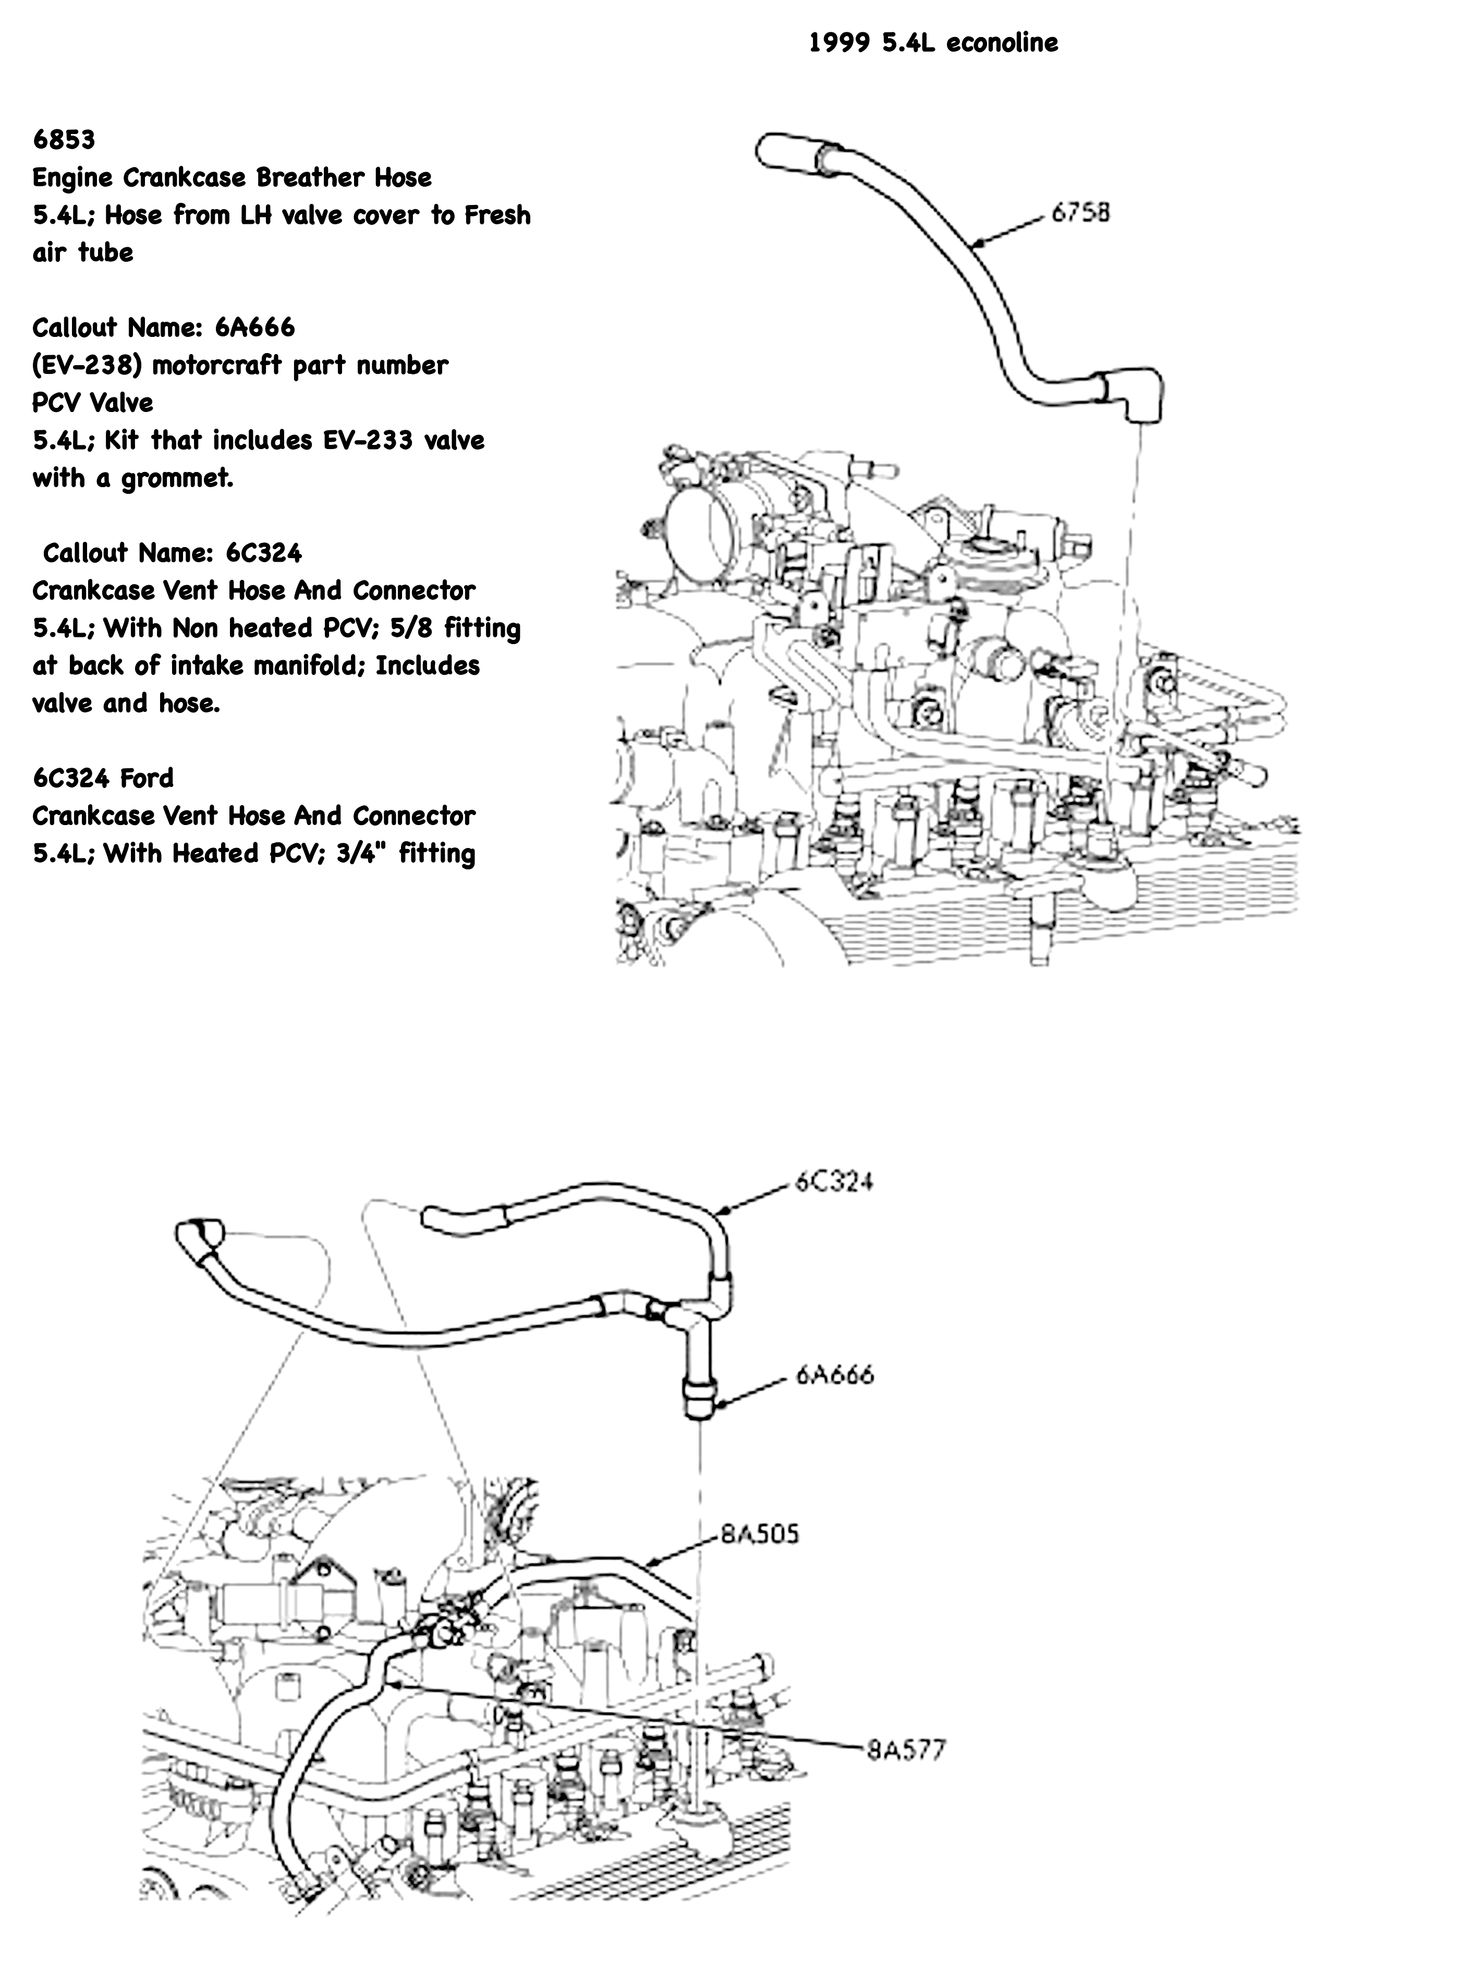 Pcv Valve Location Ford 5 4l 2004 F150 PCV Valve Location